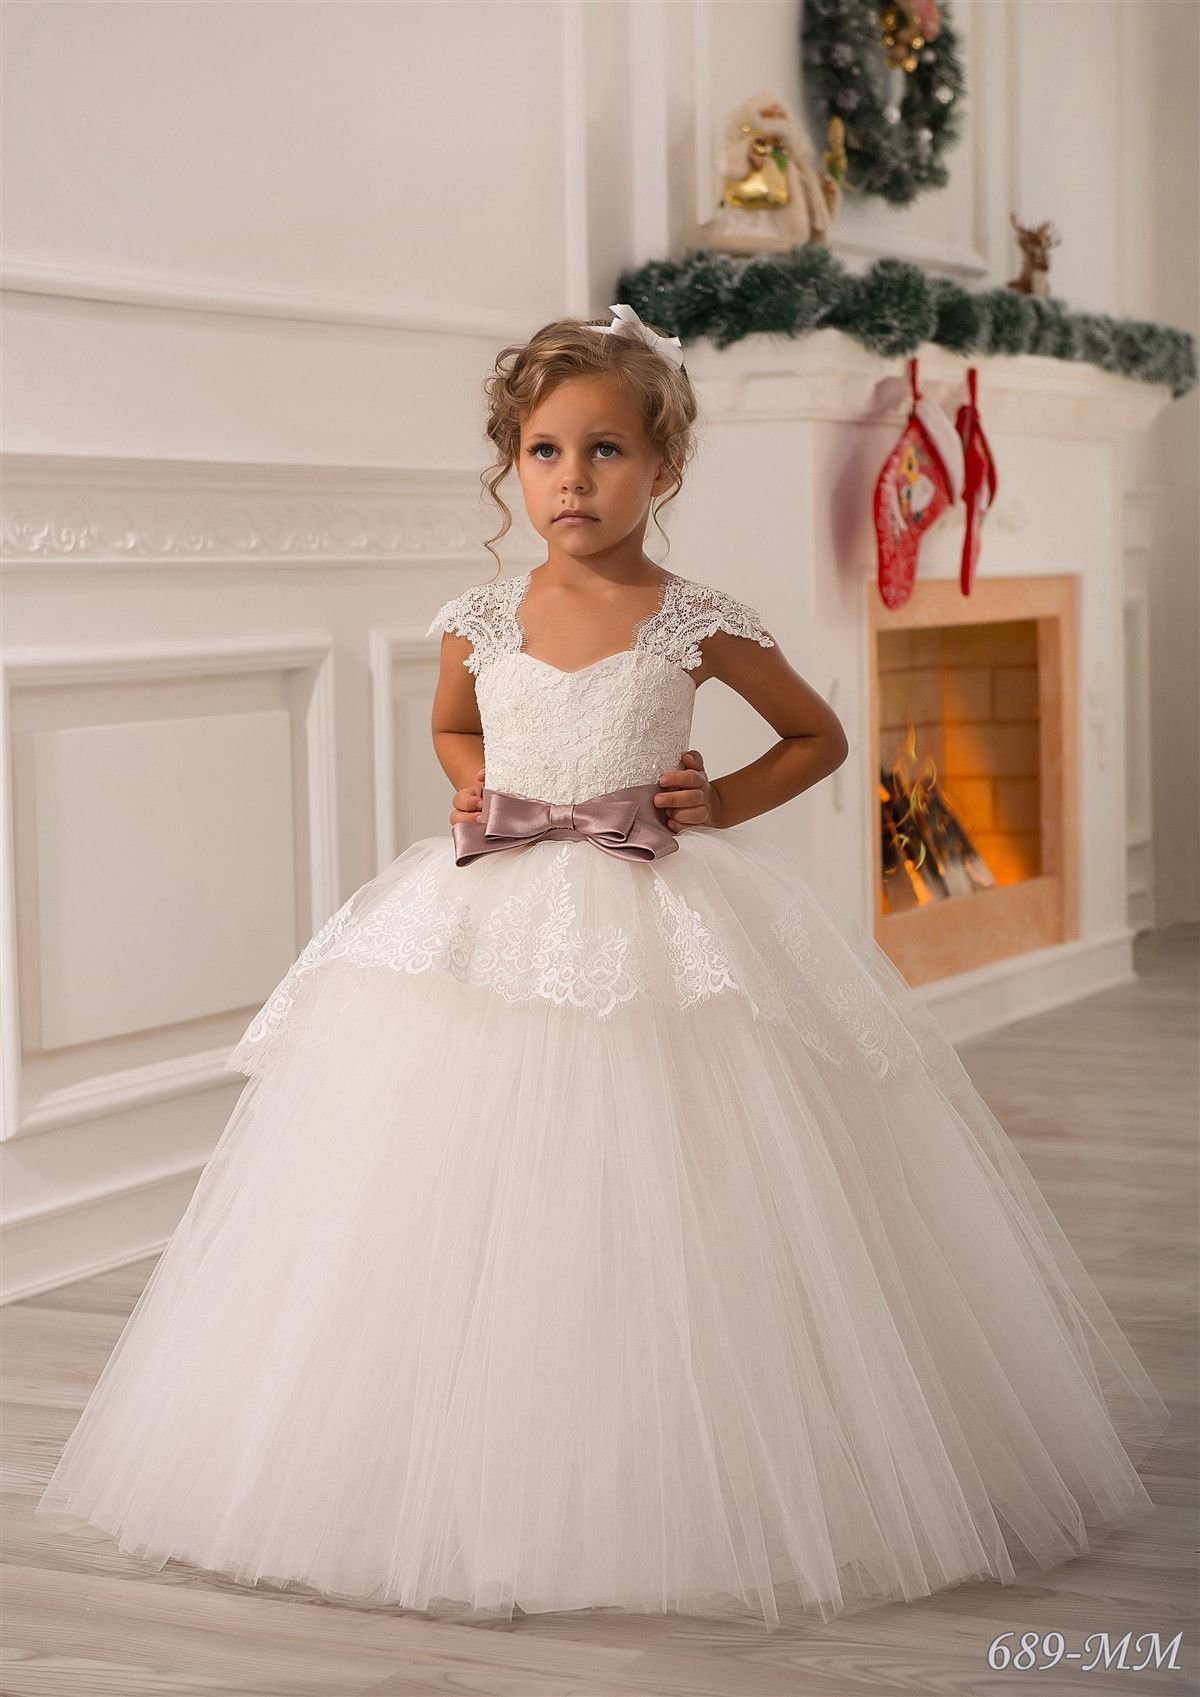 A beautiful princess dress for flower girls from 1 year to